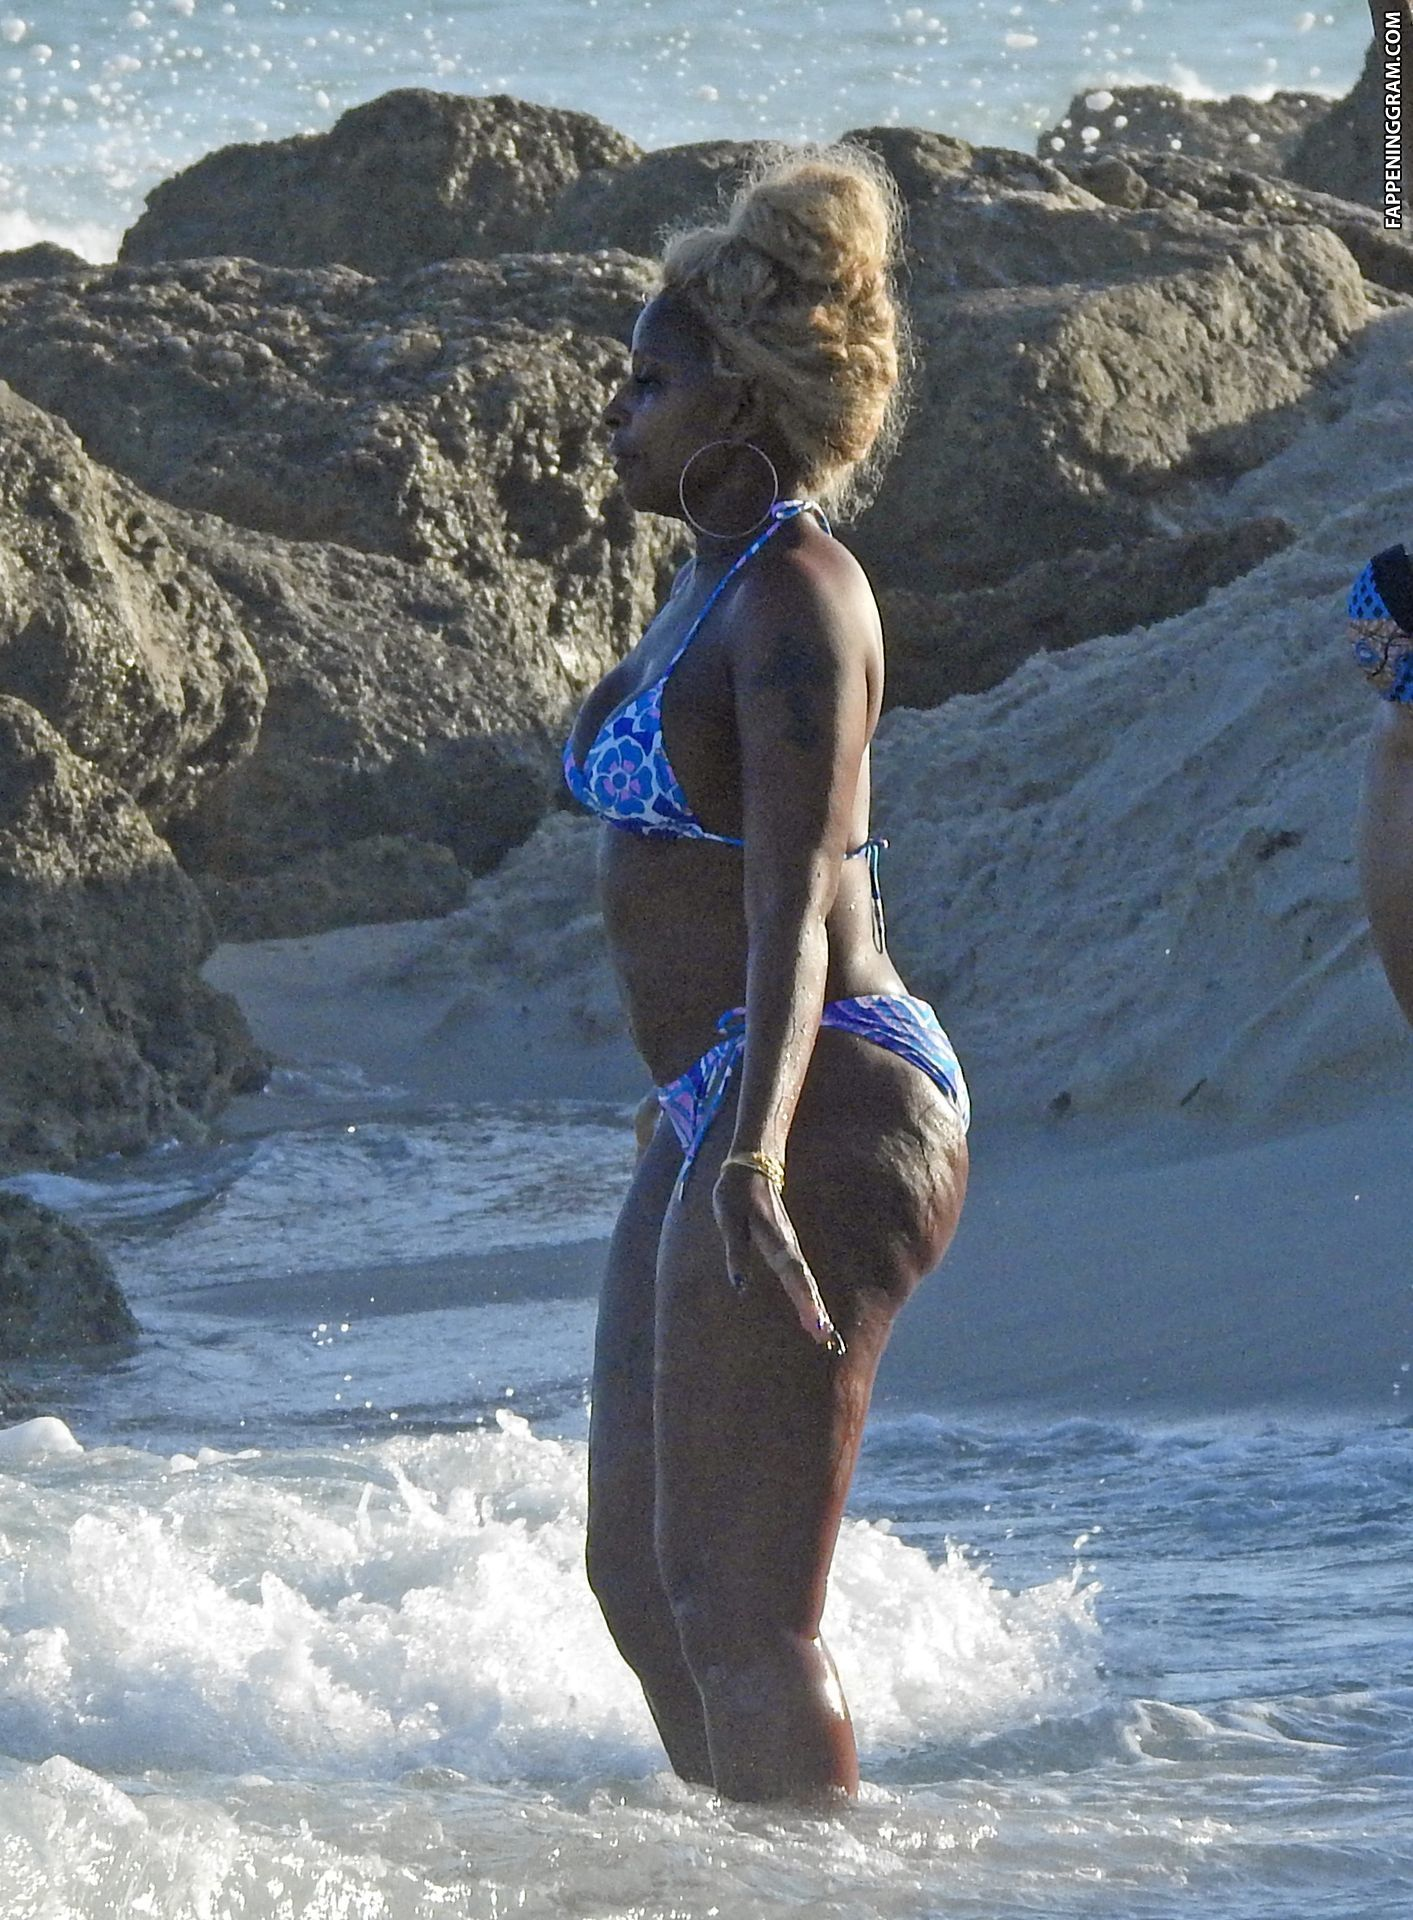 Mary j blige suns herself in racy red cut